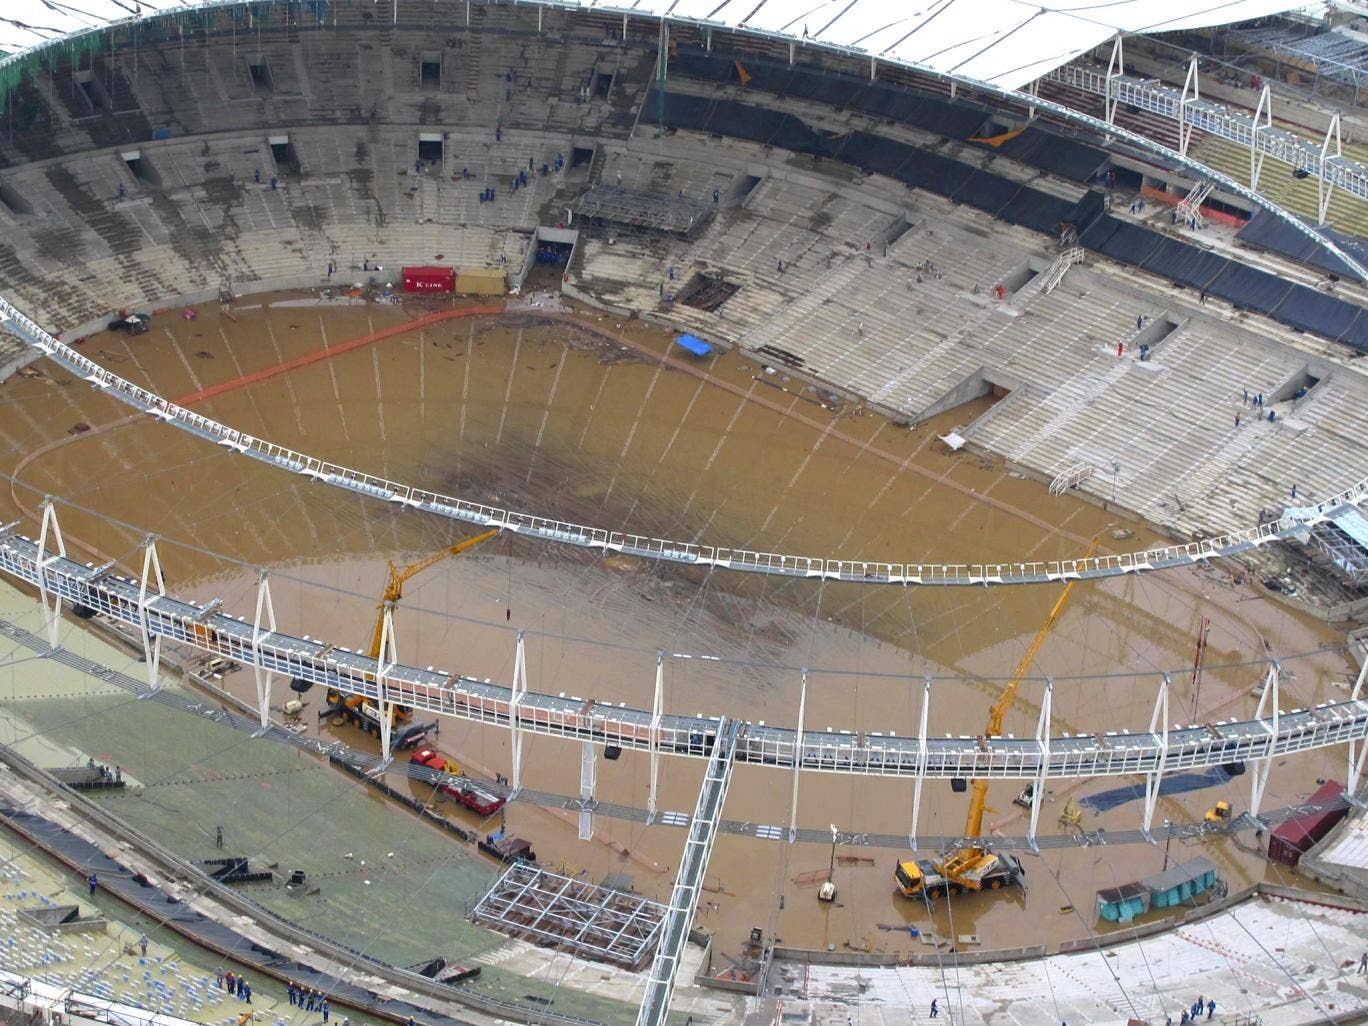 England are due to play in the rebuilt Maracana in Rio on 2 June